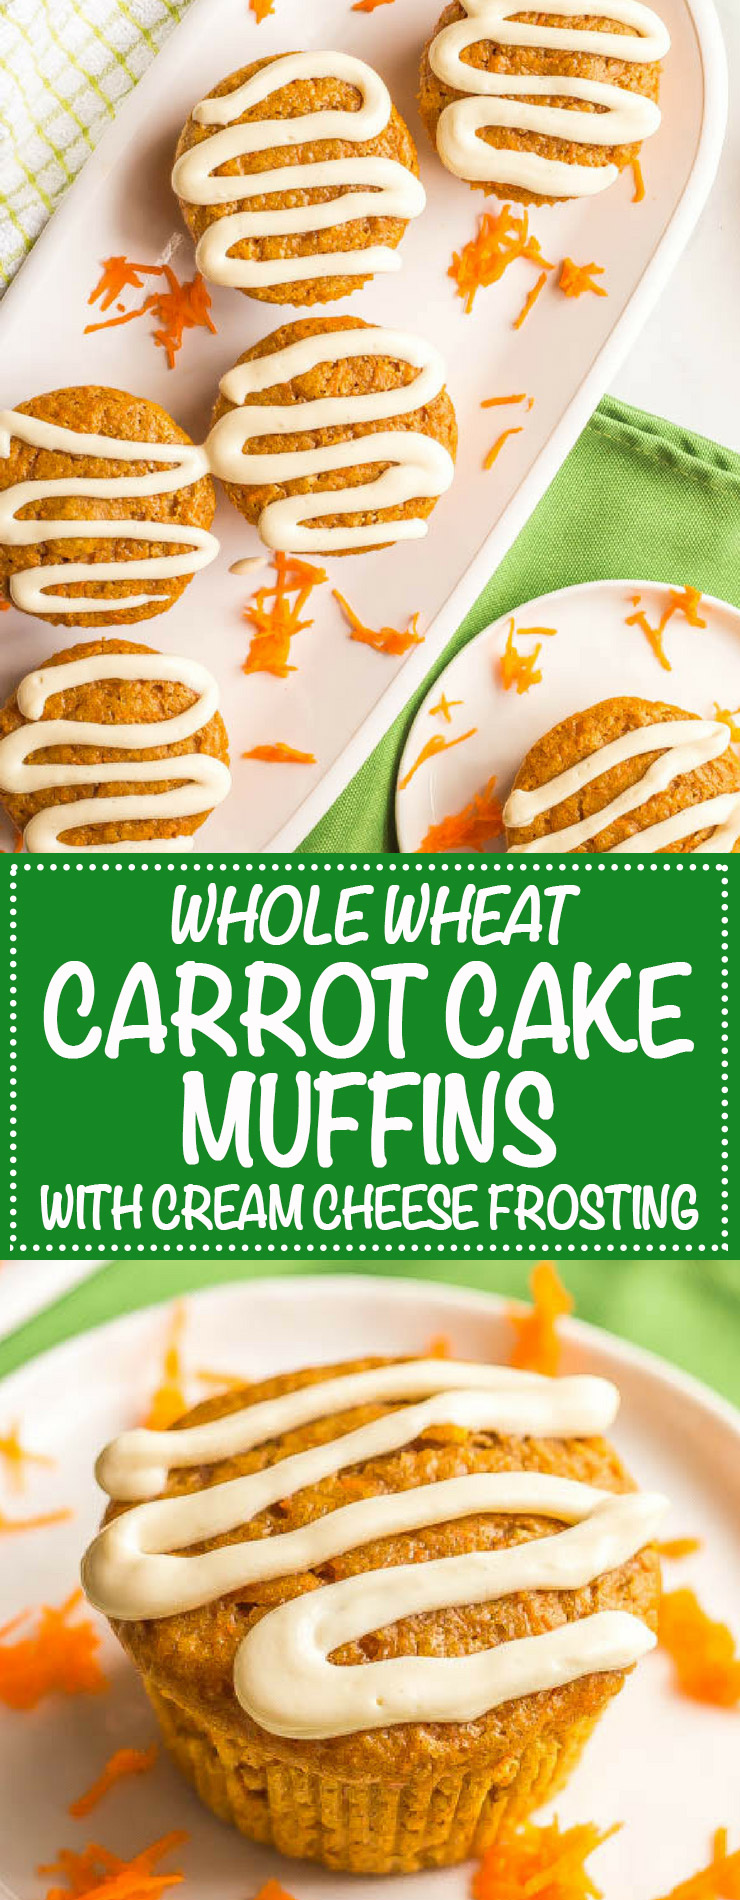 Whole wheat carrot cake muffins are fun for a healthy breakfast, snack or school lunch. Naturally sweetened and loaded with shredded carrots, these muffins are great on their own or with a light cream cheese frosting. #healthymuffins #wholewheatmuffins #healthybreakfast #carrotcake | www.familyfoodonthetable.com